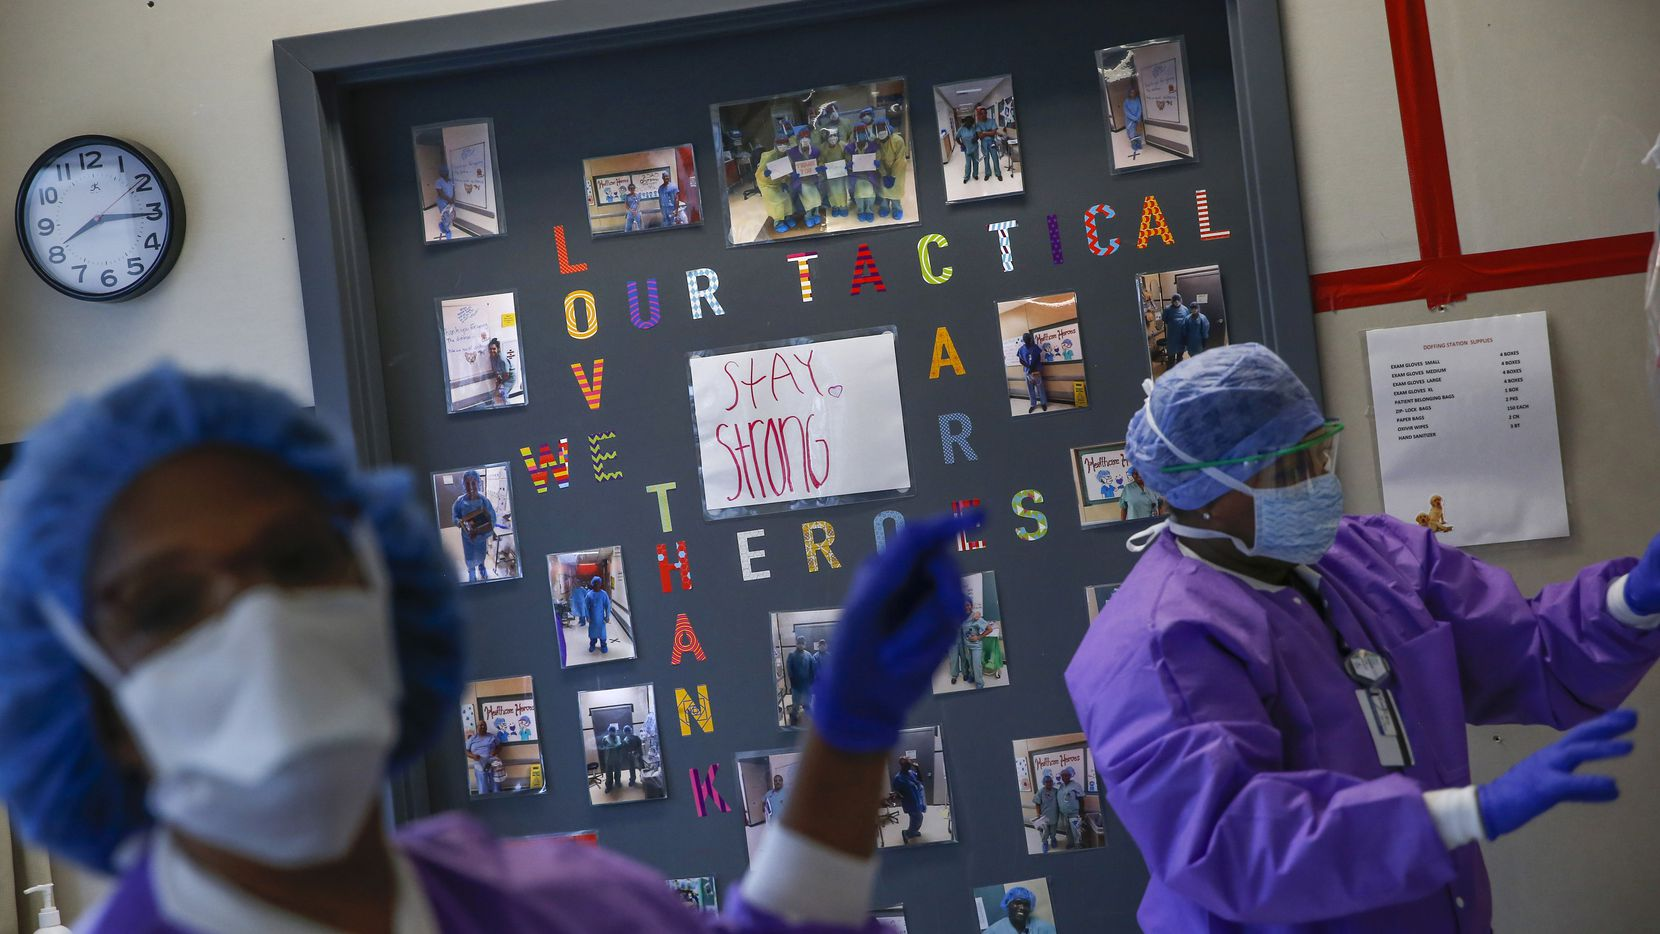 """Health care workers Deborah McElroy, left, and Gina Ousley clean face shields in the COVID-19 Tactical Care Unit at Parkland Memorial Hospital on Wednesday.  """"We're wiping them all off to make sure they're clean to see through for the workers to head back in,"""" Ousley said."""